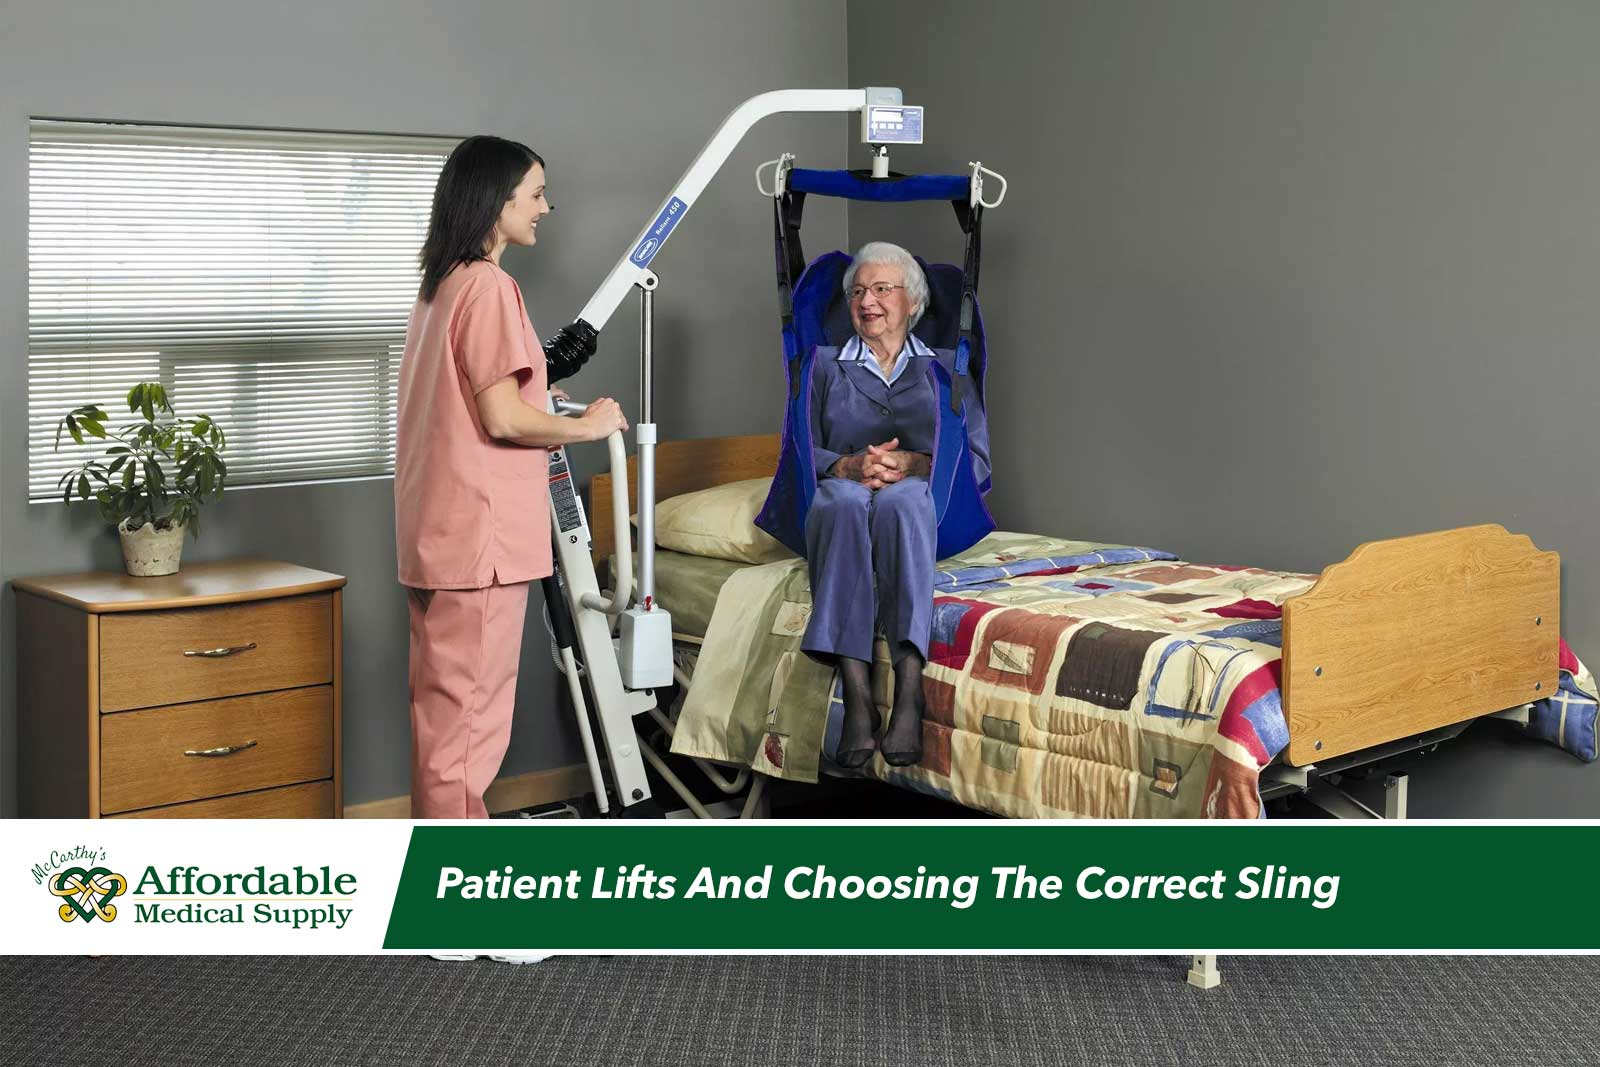 How To Determine the Correct Sling for Patient Lifts